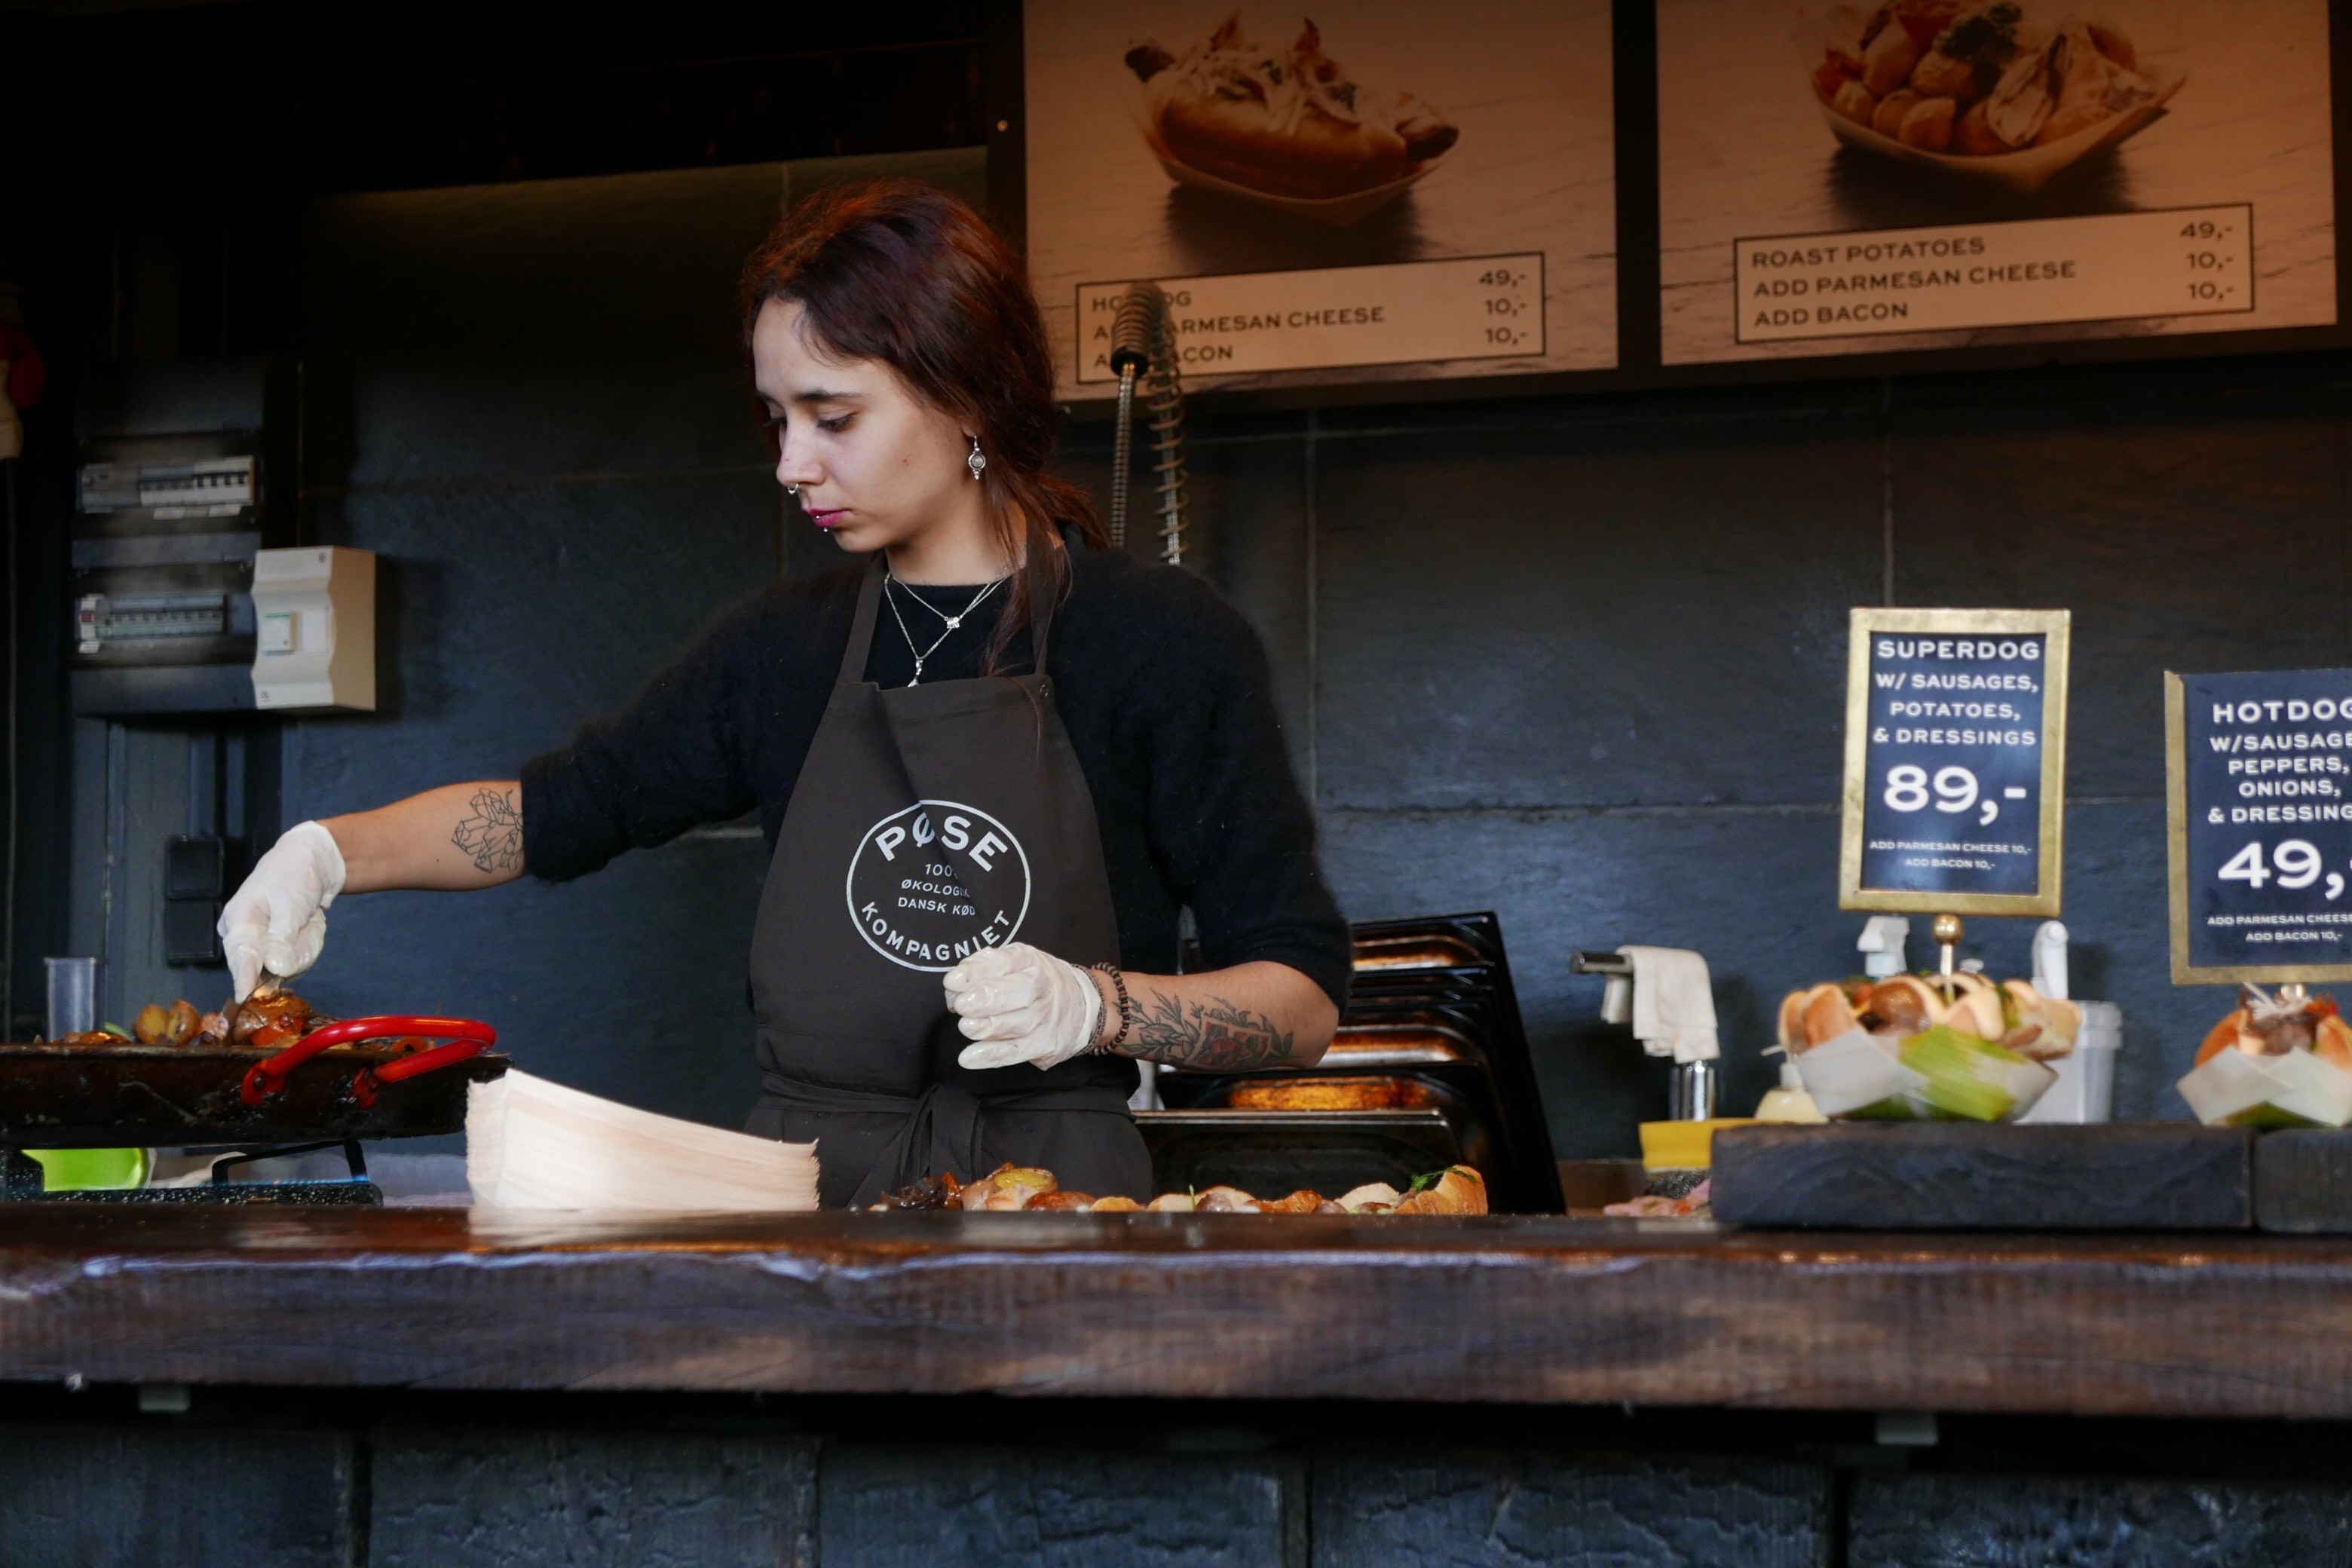 A female working at a café in Copenhagen